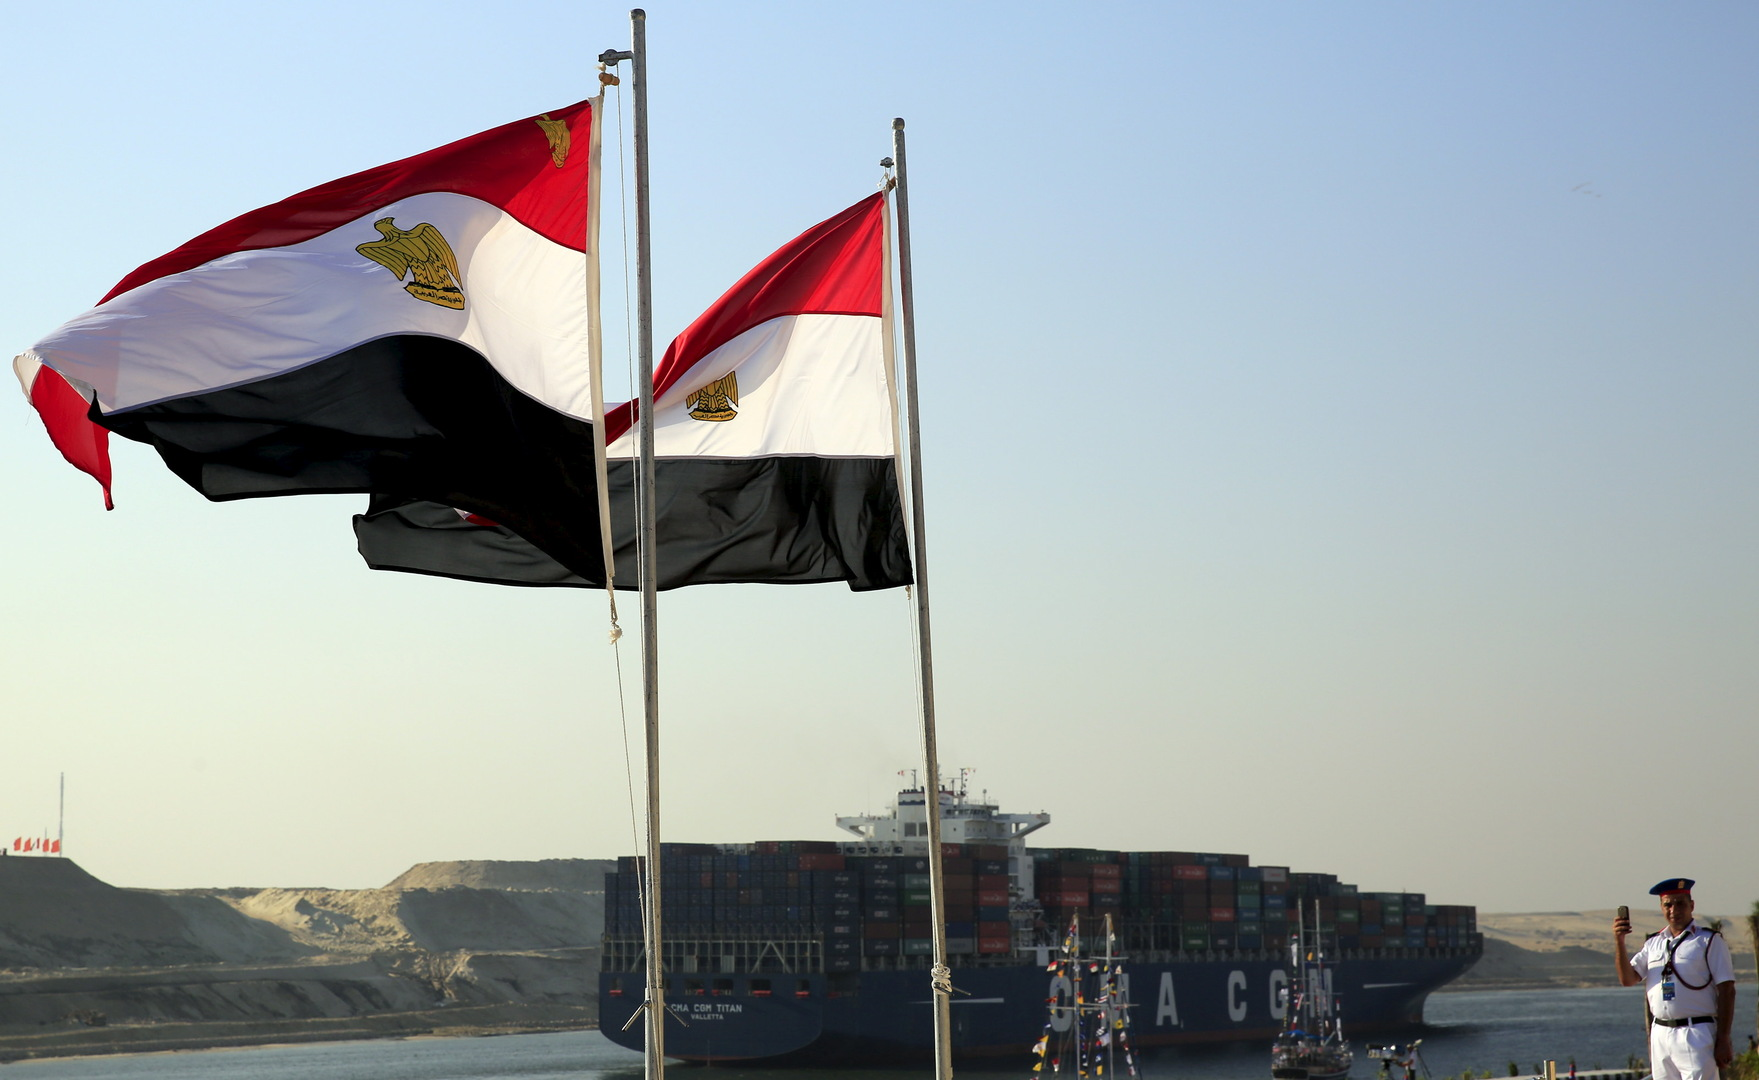 The Egyptian government approves a presidential decision on the East Mediterranean Gas Charter